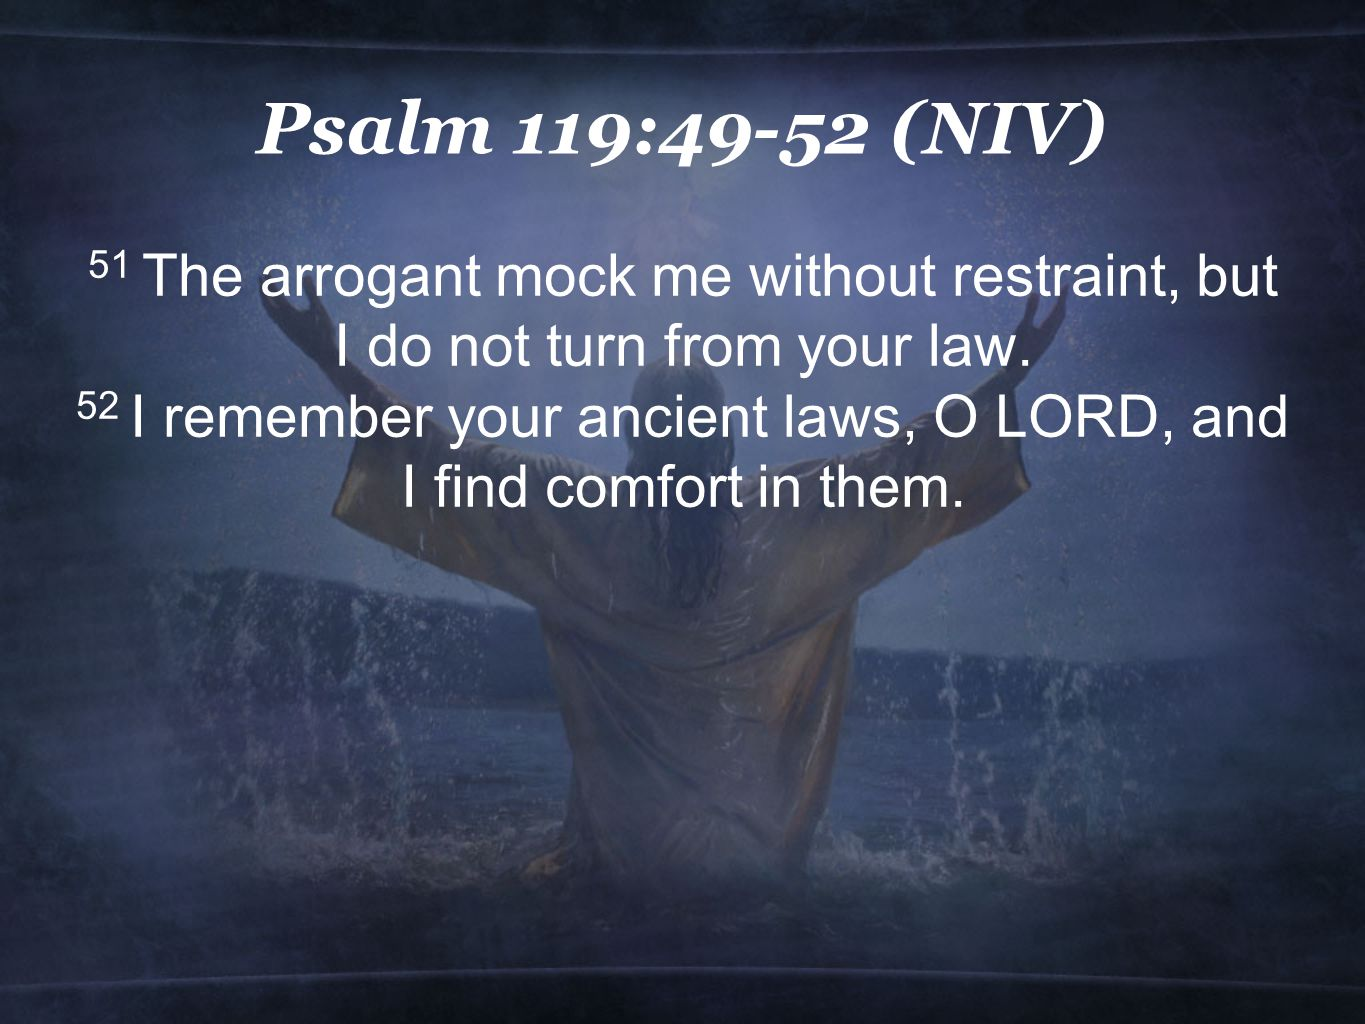 Psalm 119:49-52 (NIV) 51 The arrogant mock me without restraint, but I do not turn from your law.